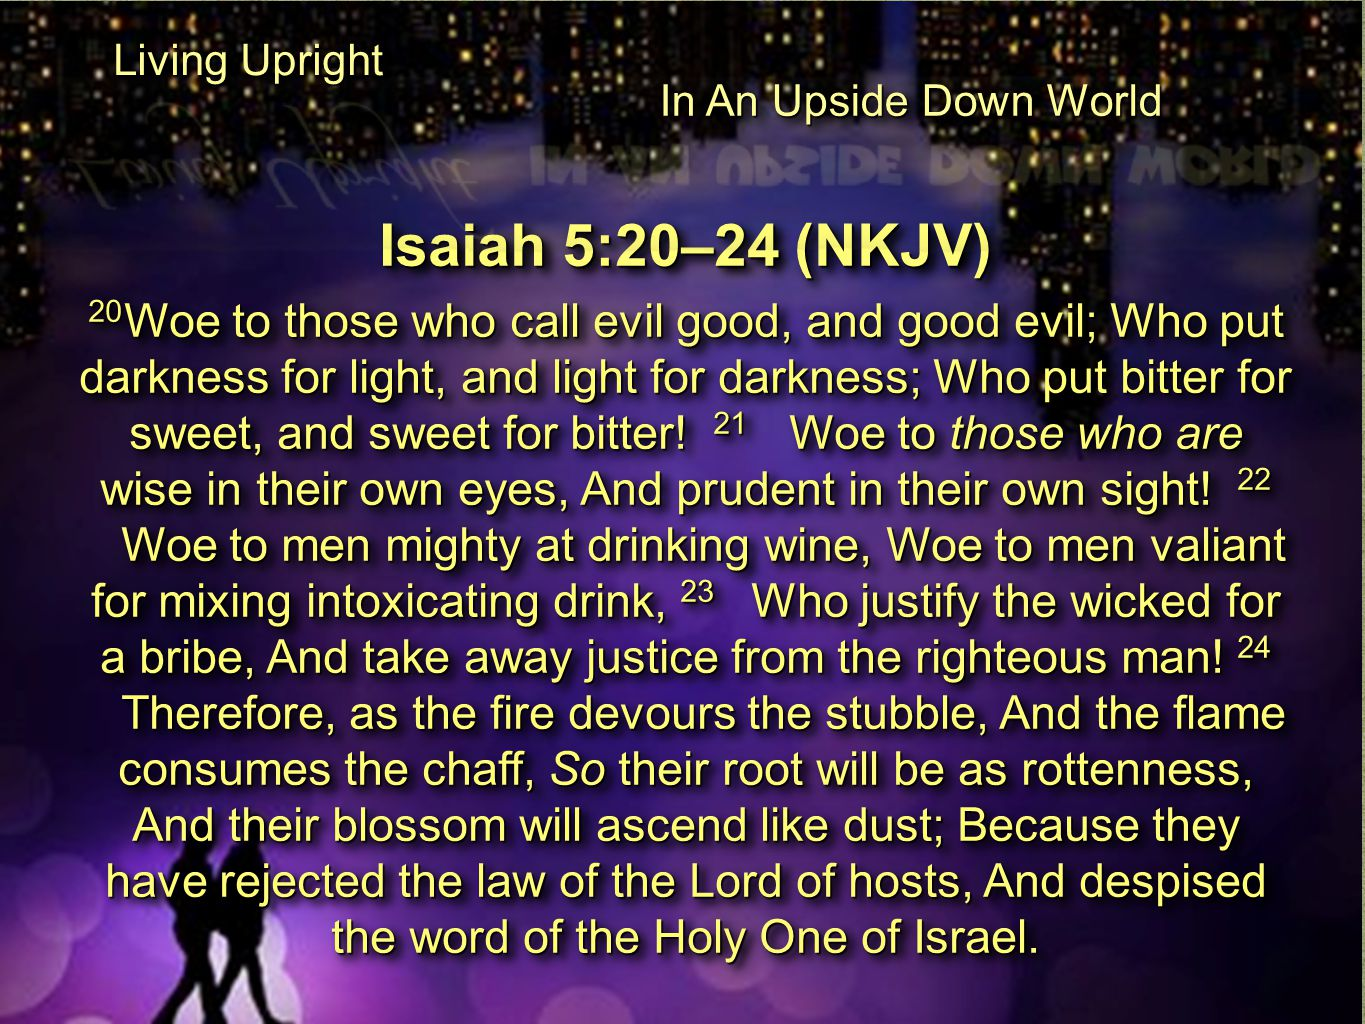 Isaiah 5:20–24 (NKJV) 20 Woe to those who call evil good, and good evil; Who put darkness for light, and light for darkness; Who put bitter for sweet, and sweet for bitter.